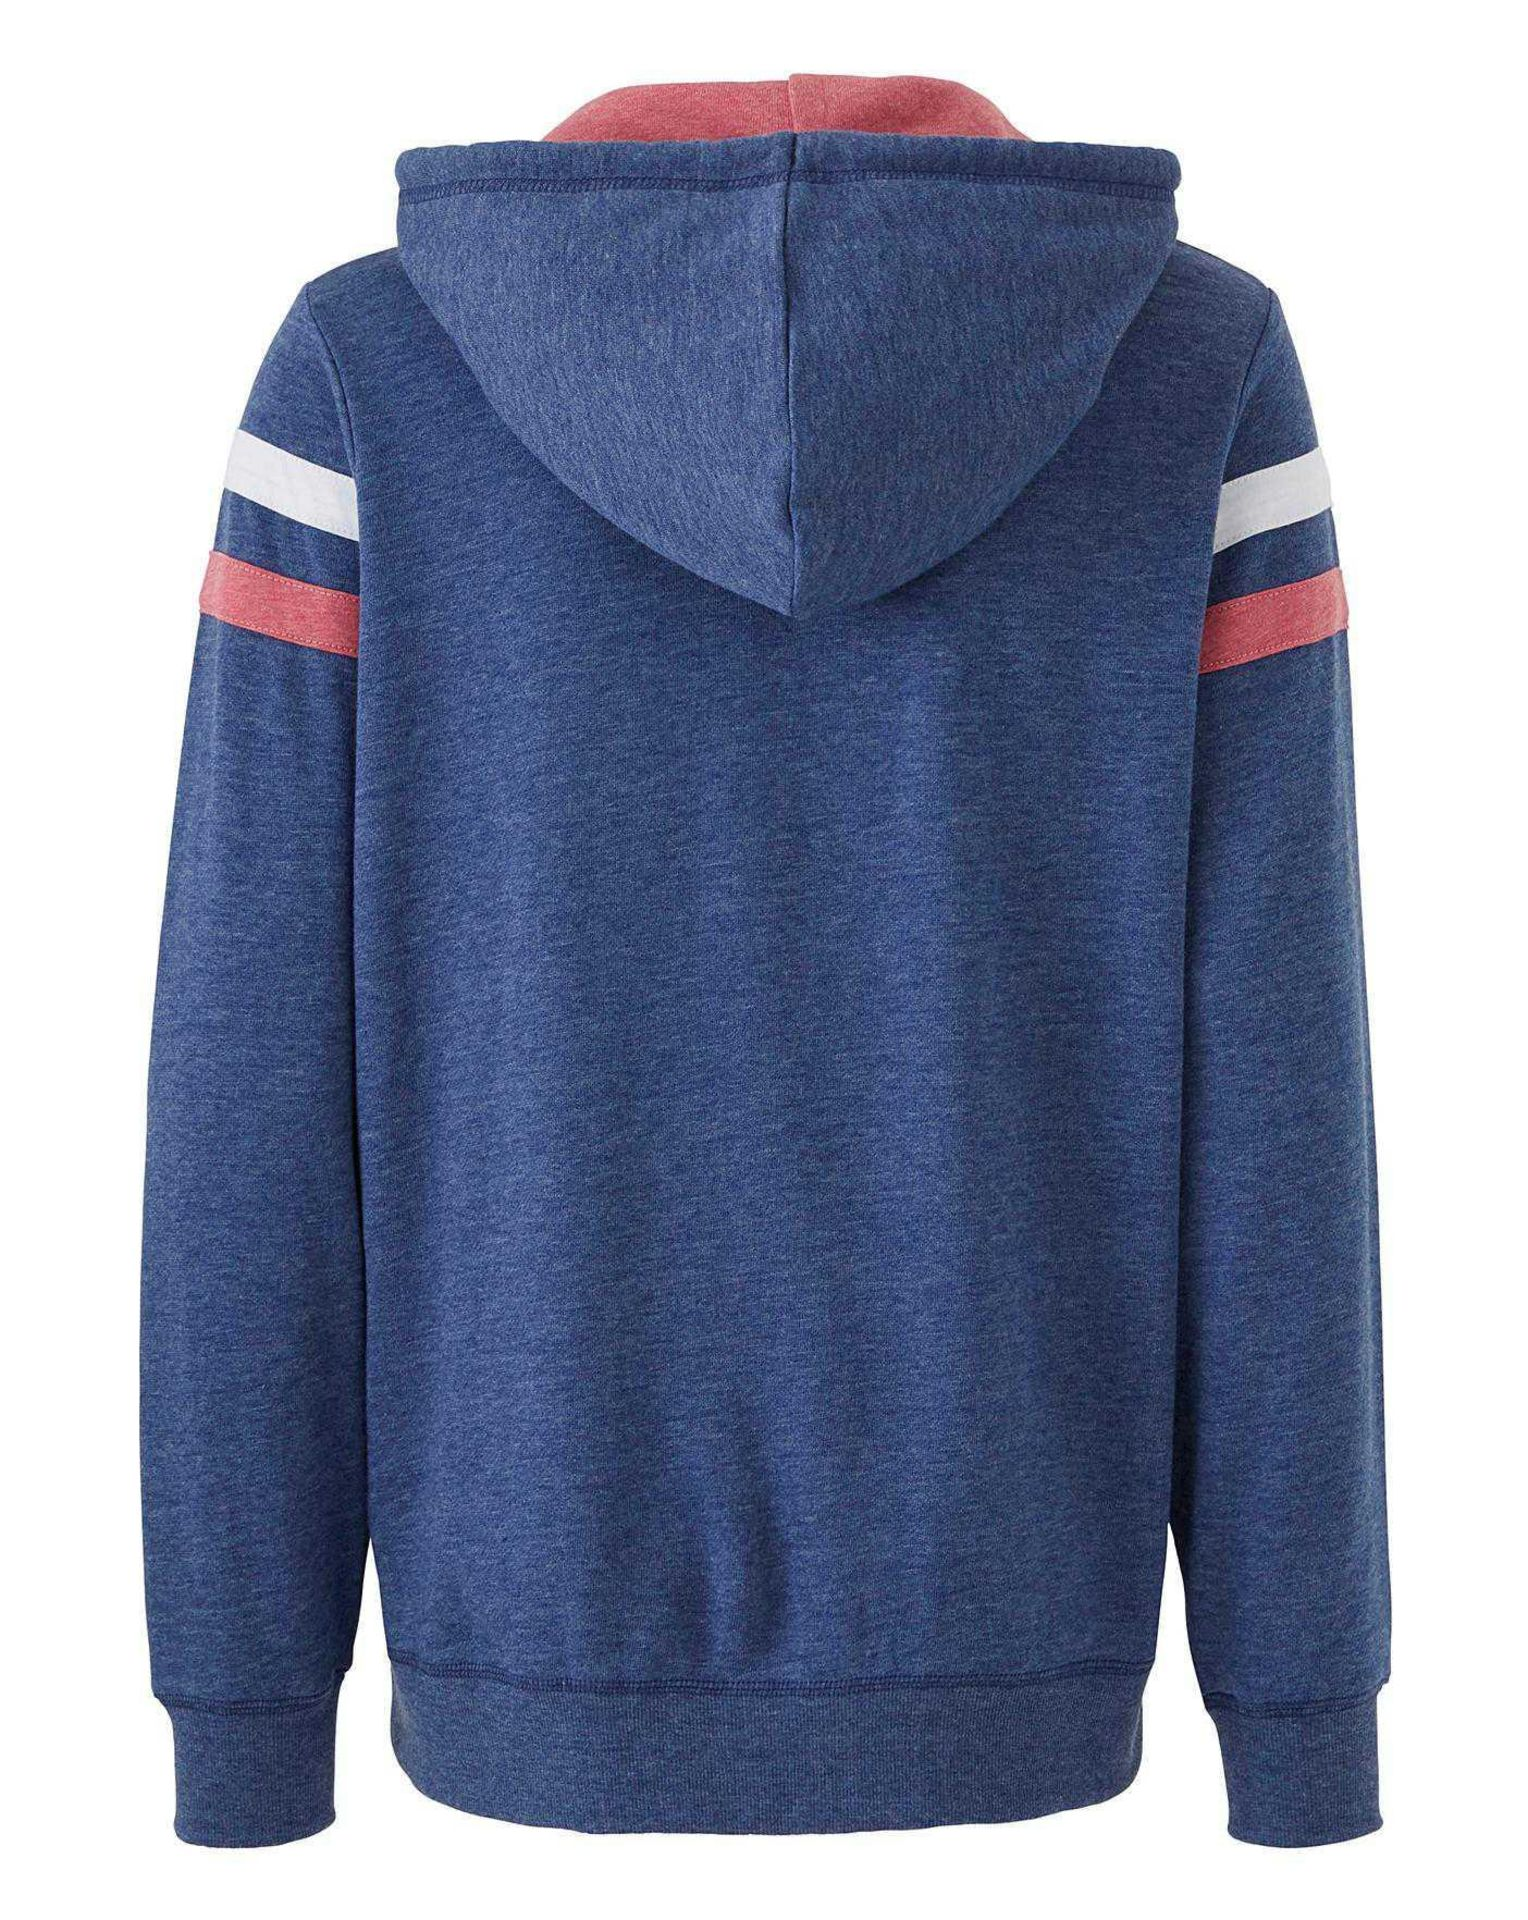 Rrp £625 Lot To Contain 25 Brand New Bagged Women'S Size 12 Label Be Zip Front Hoodies. Sourced From - Image 2 of 3